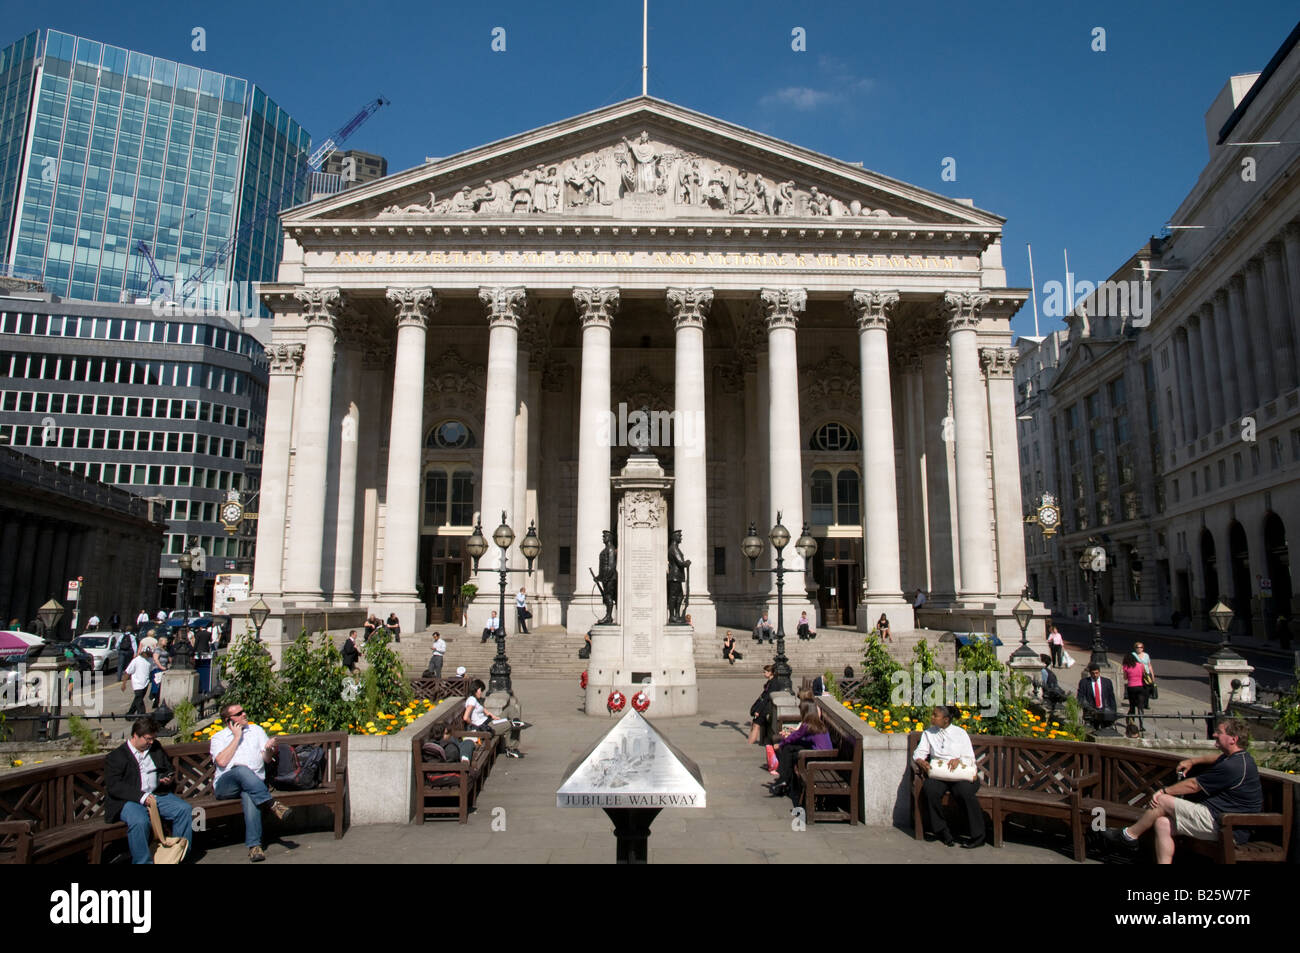 The Royal Exchange in the City of London, UK - Stock Image